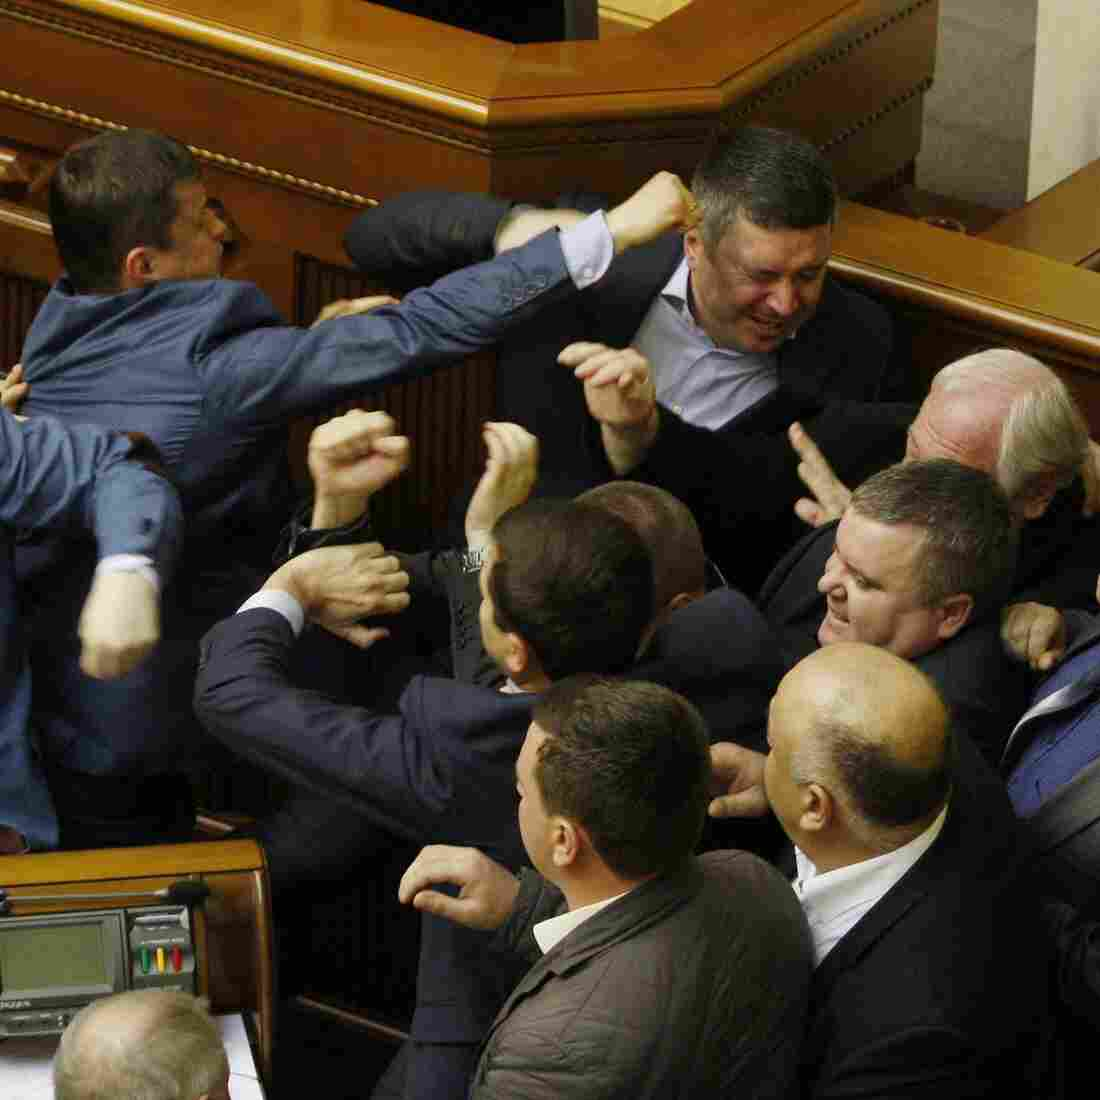 Fists Fly In Ukraine's Parliament After Lawmaker's Speech [VIDEO]